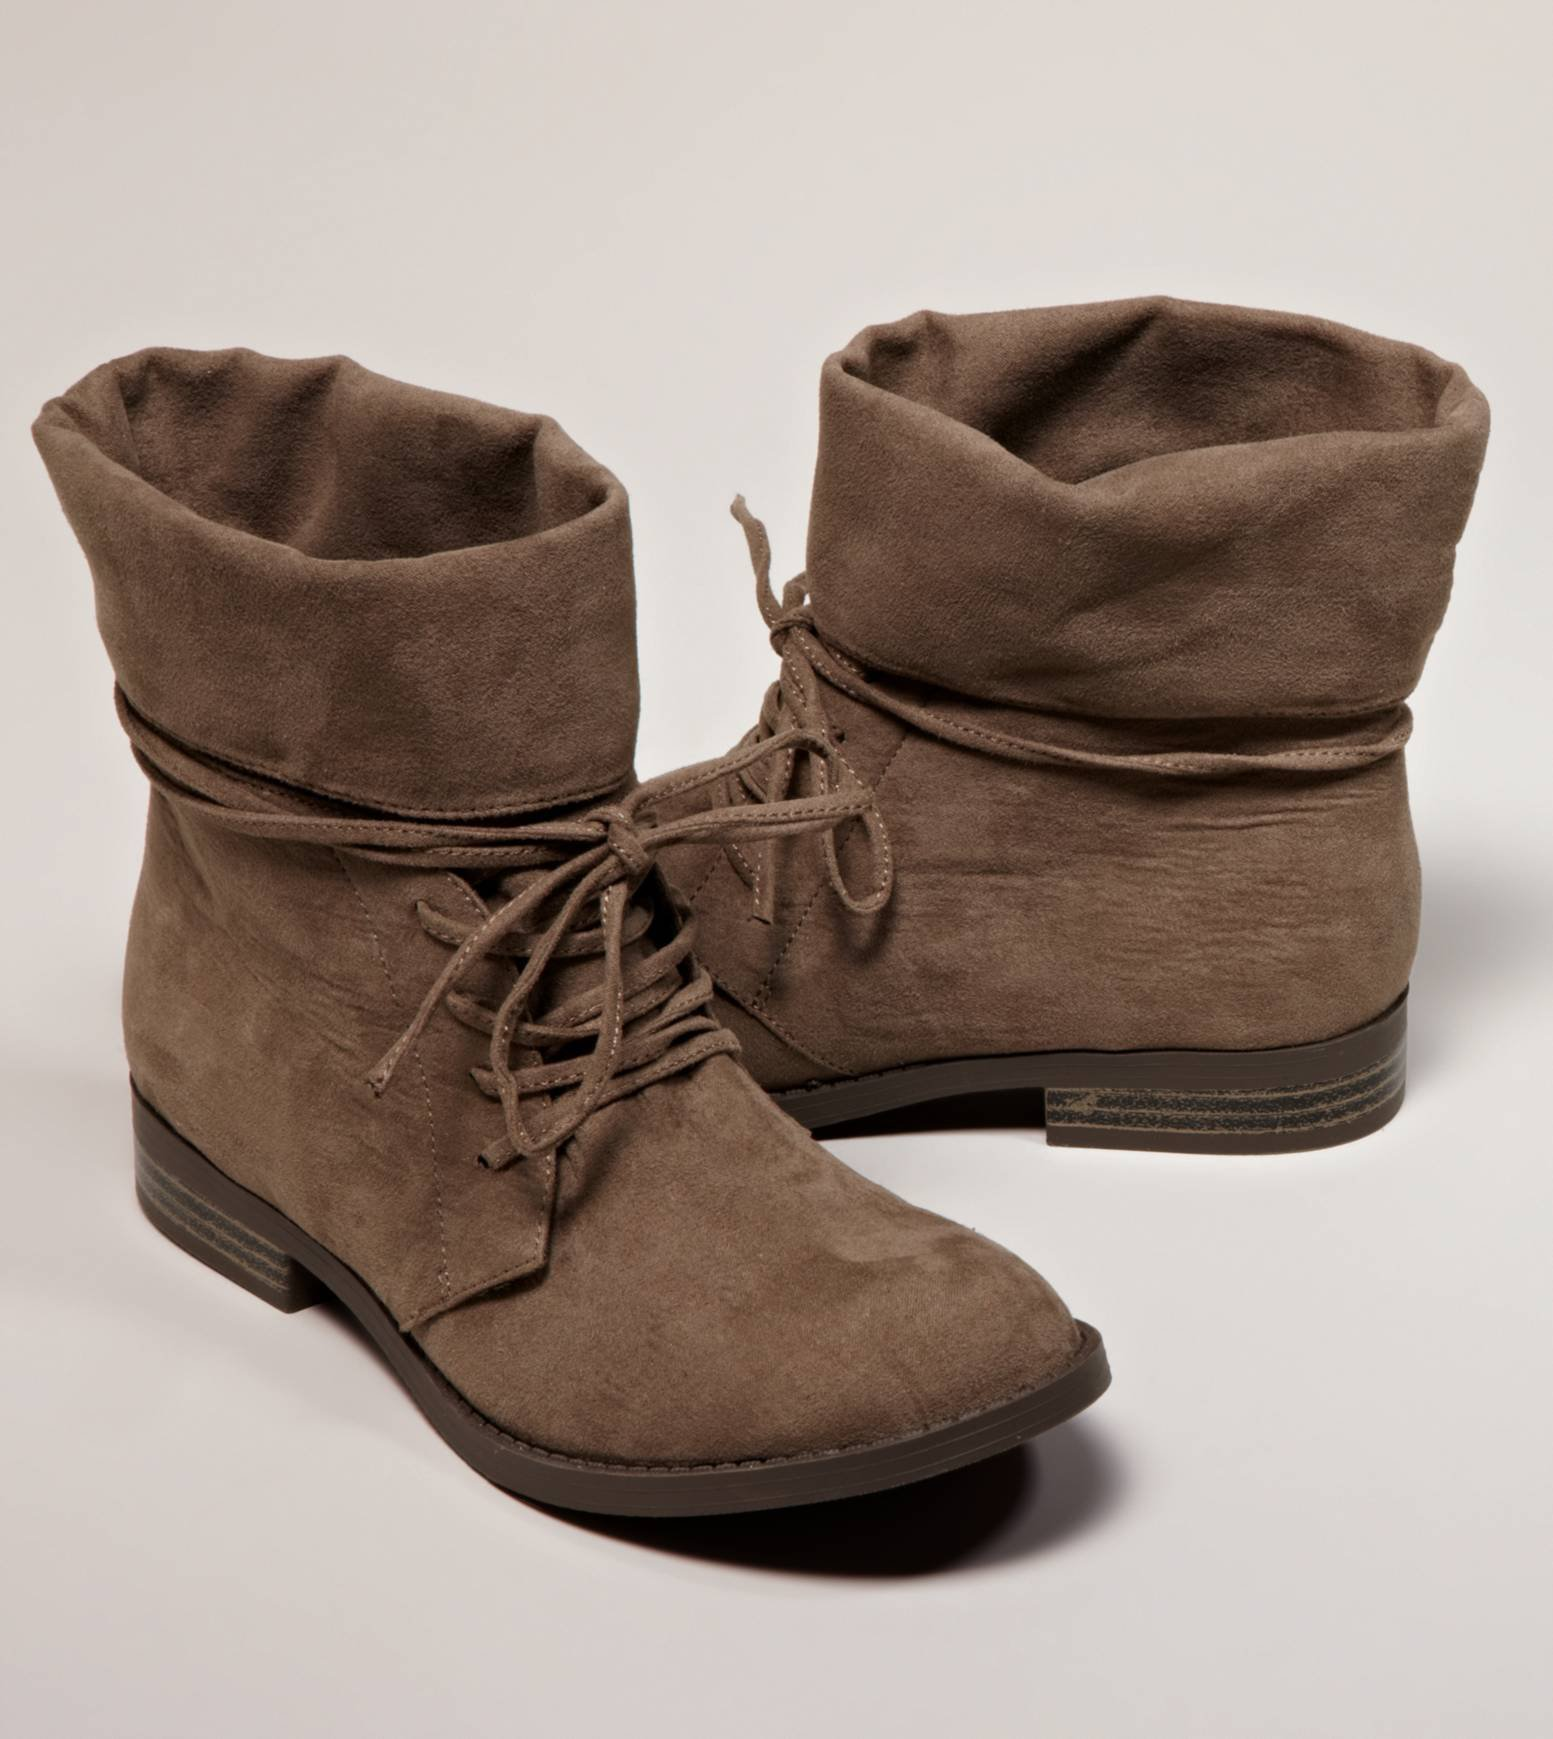 AEO Foldover Suede Bootie   American Eagle Outfitters on Wanelo